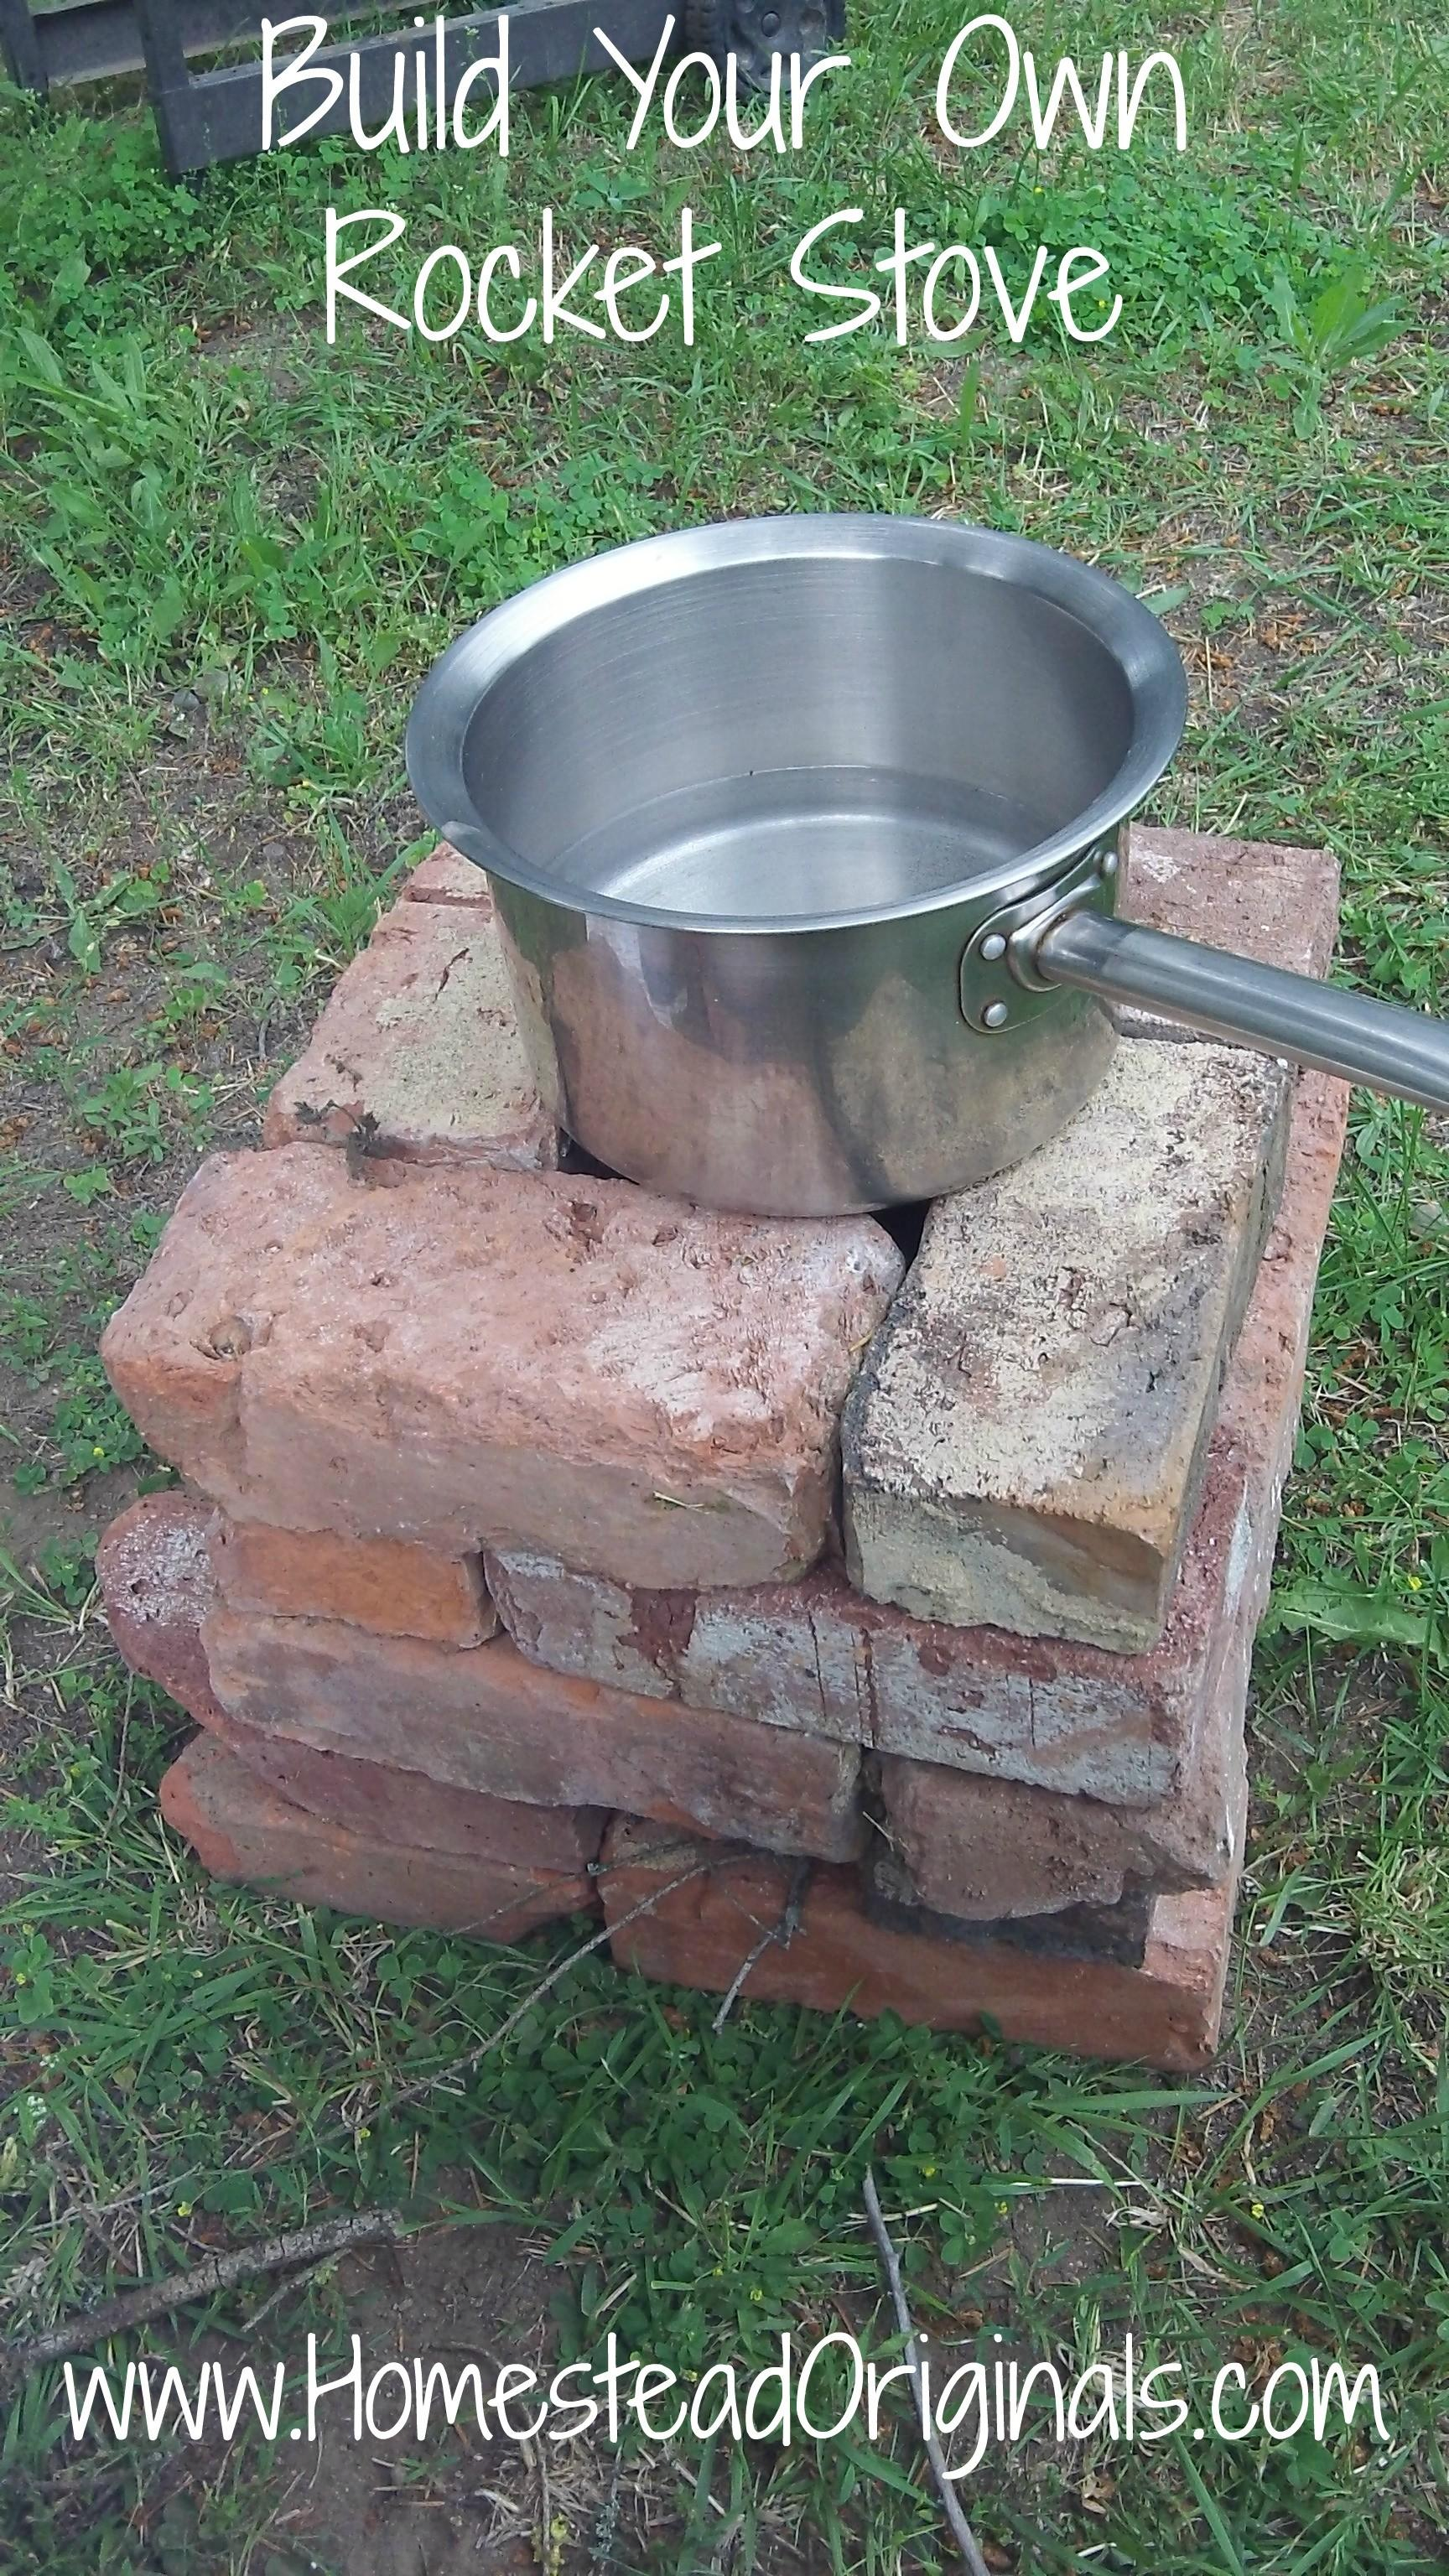 Build Simple Rocket Stove